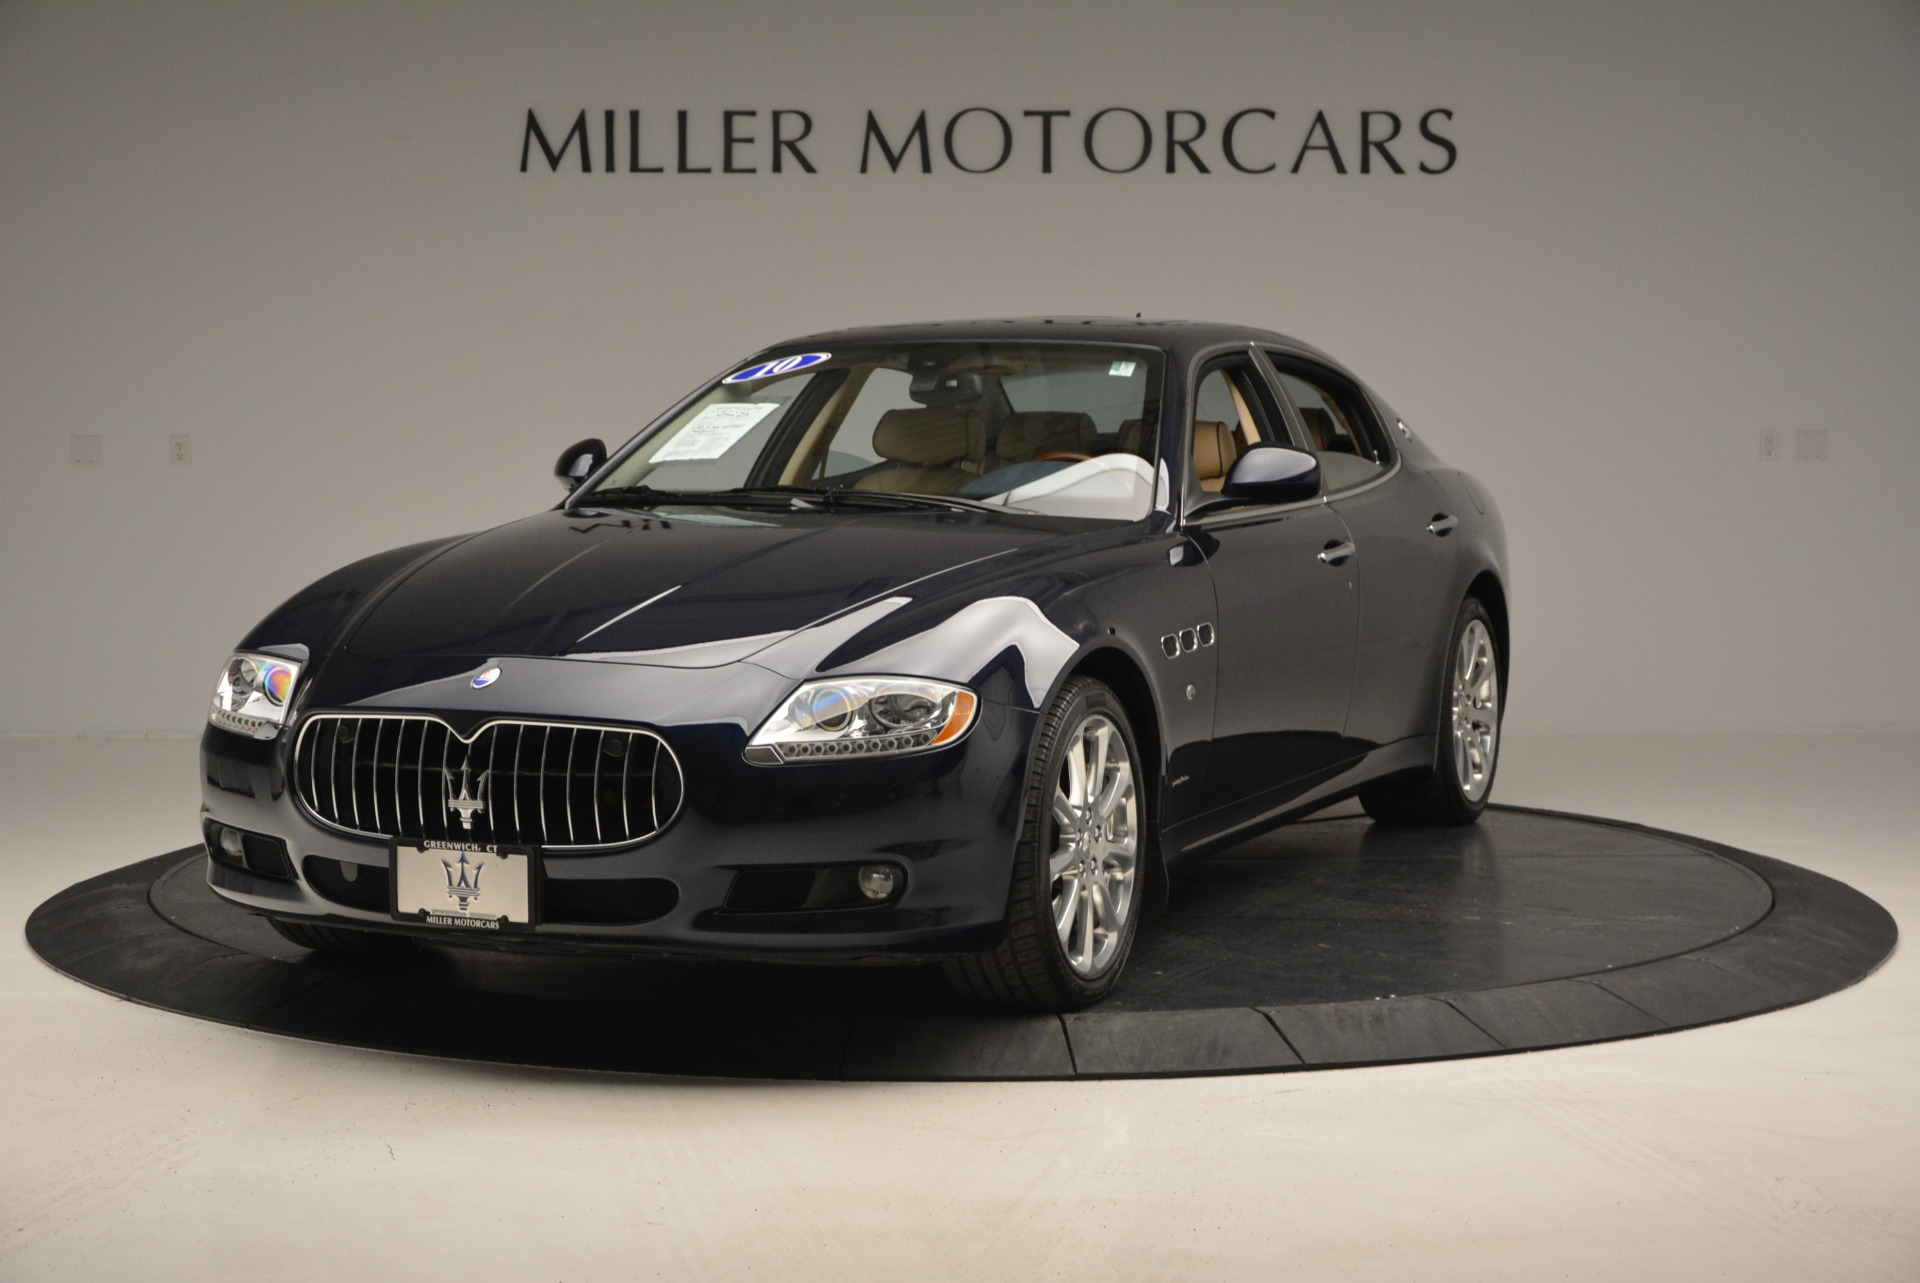 Used 2010 Maserati Quattroporte S for sale Sold at Bentley Greenwich in Greenwich CT 06830 1